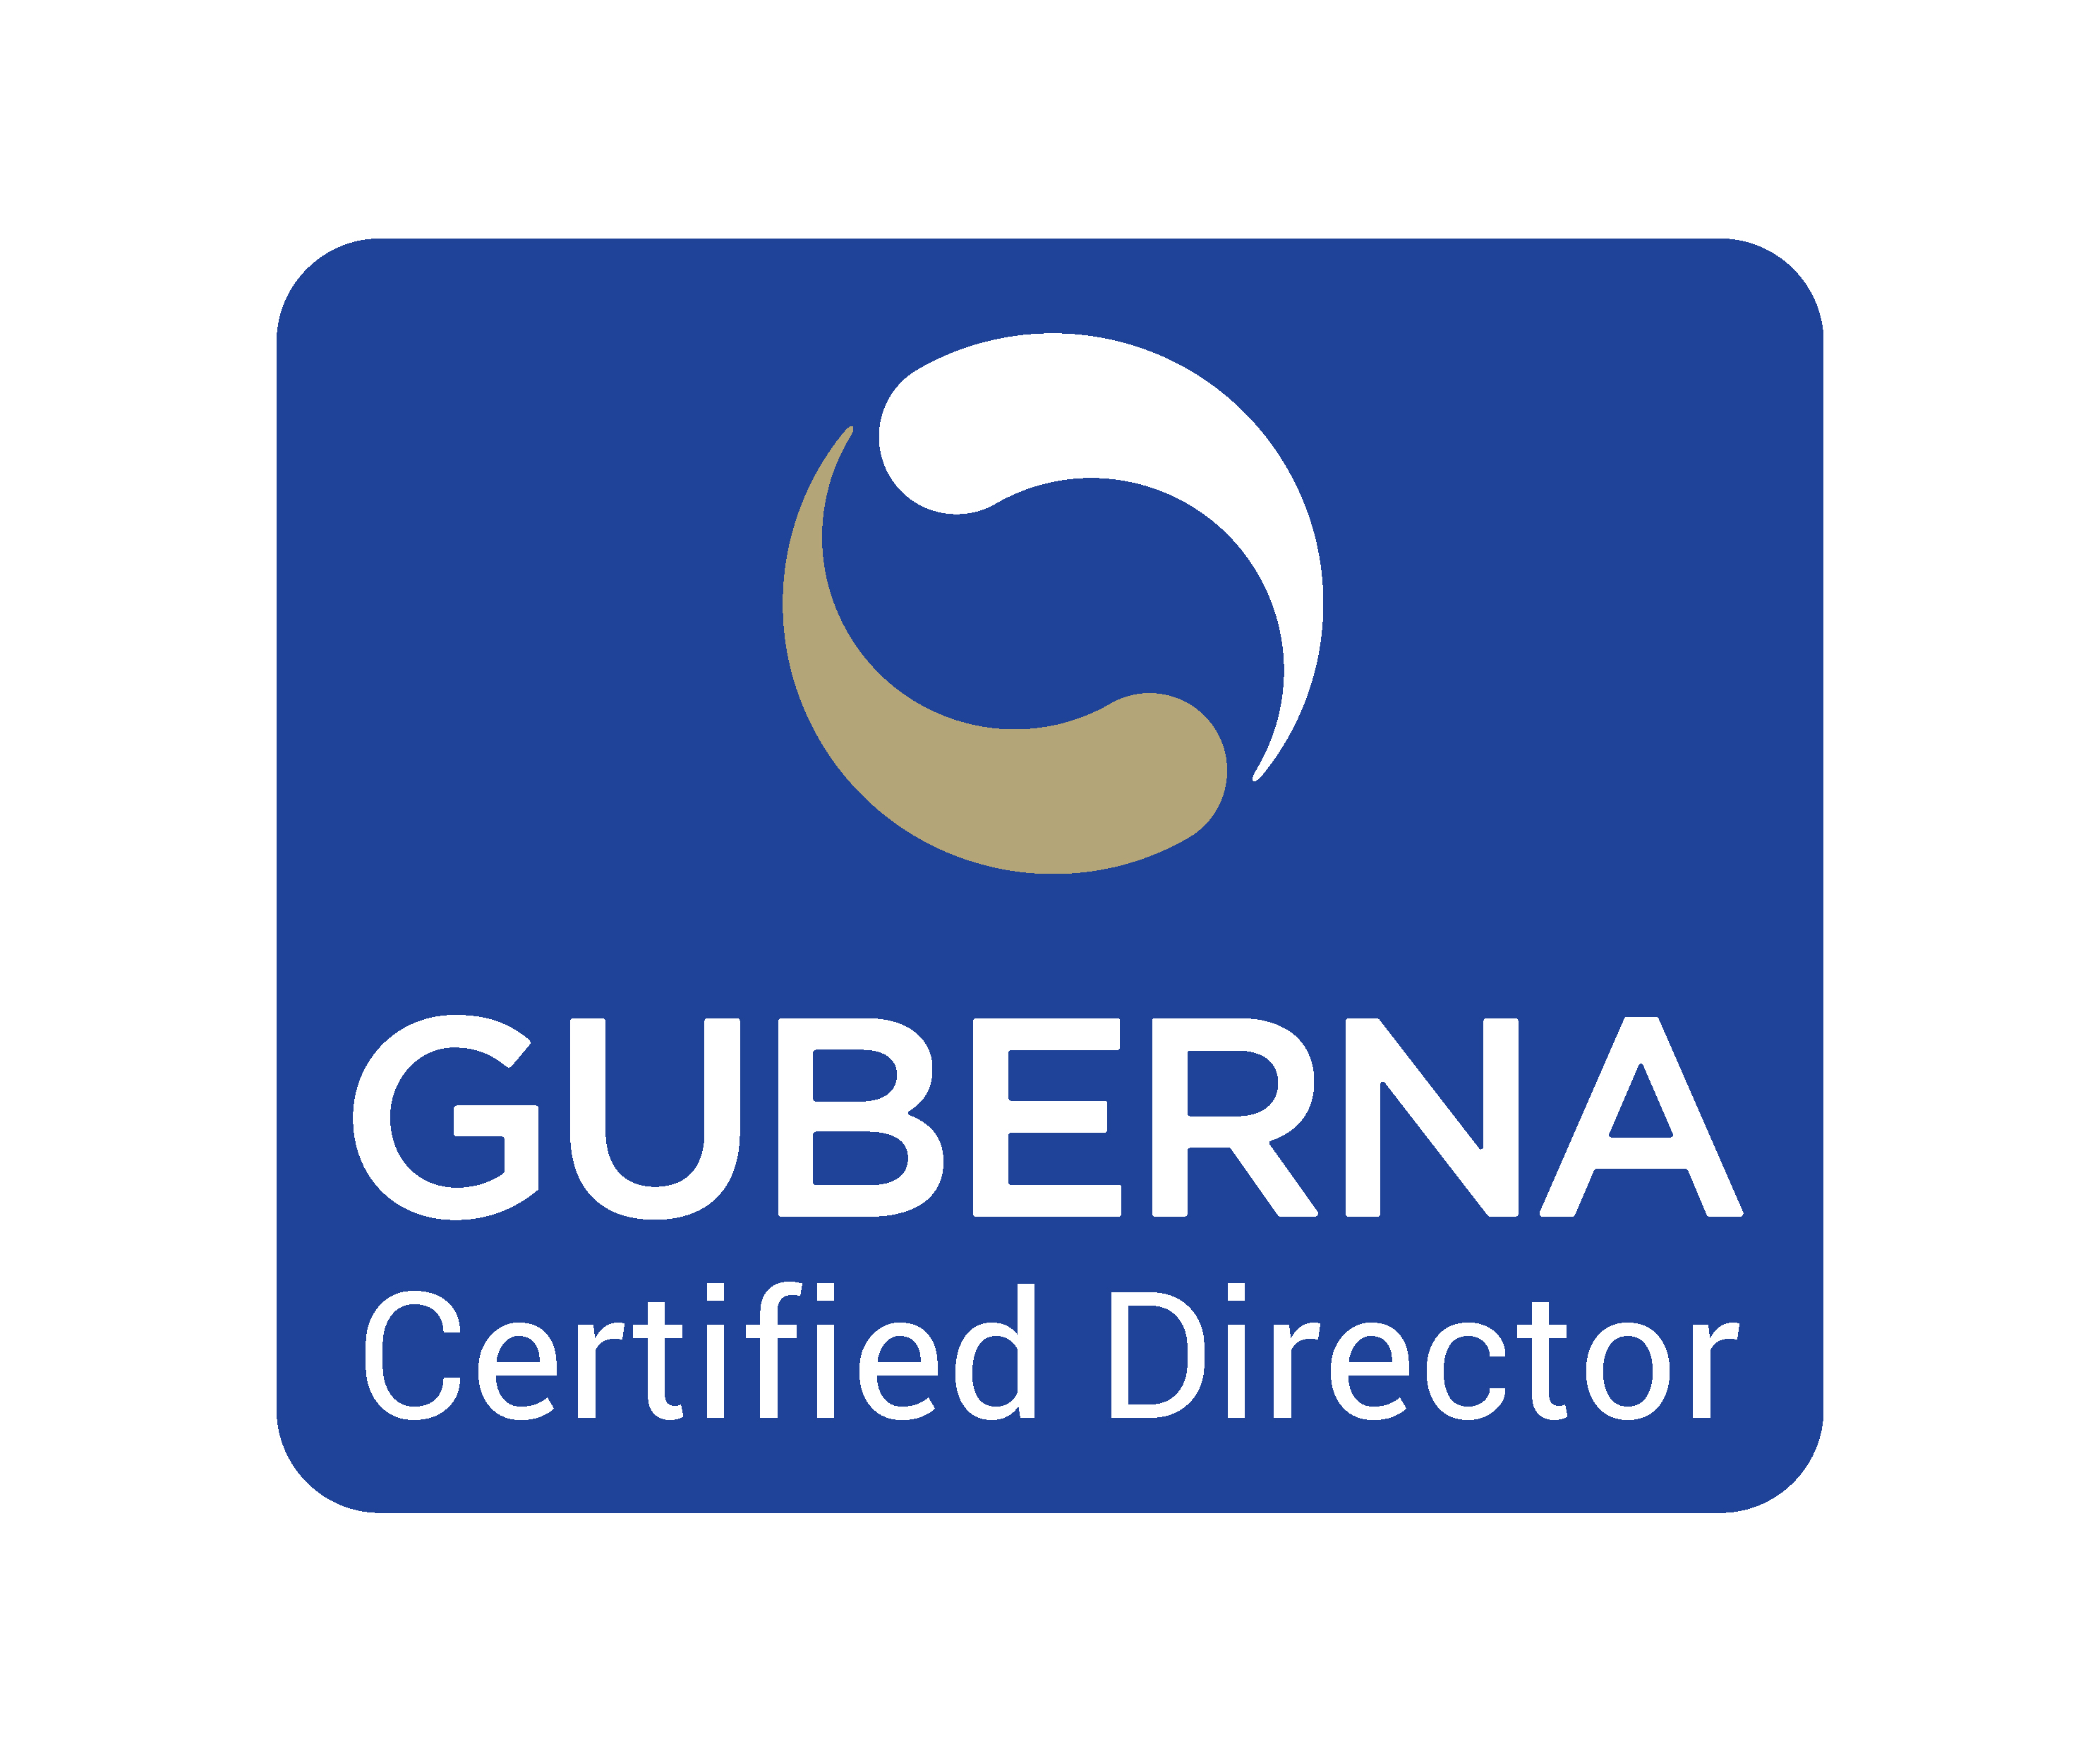 GUBERNA Certified Director